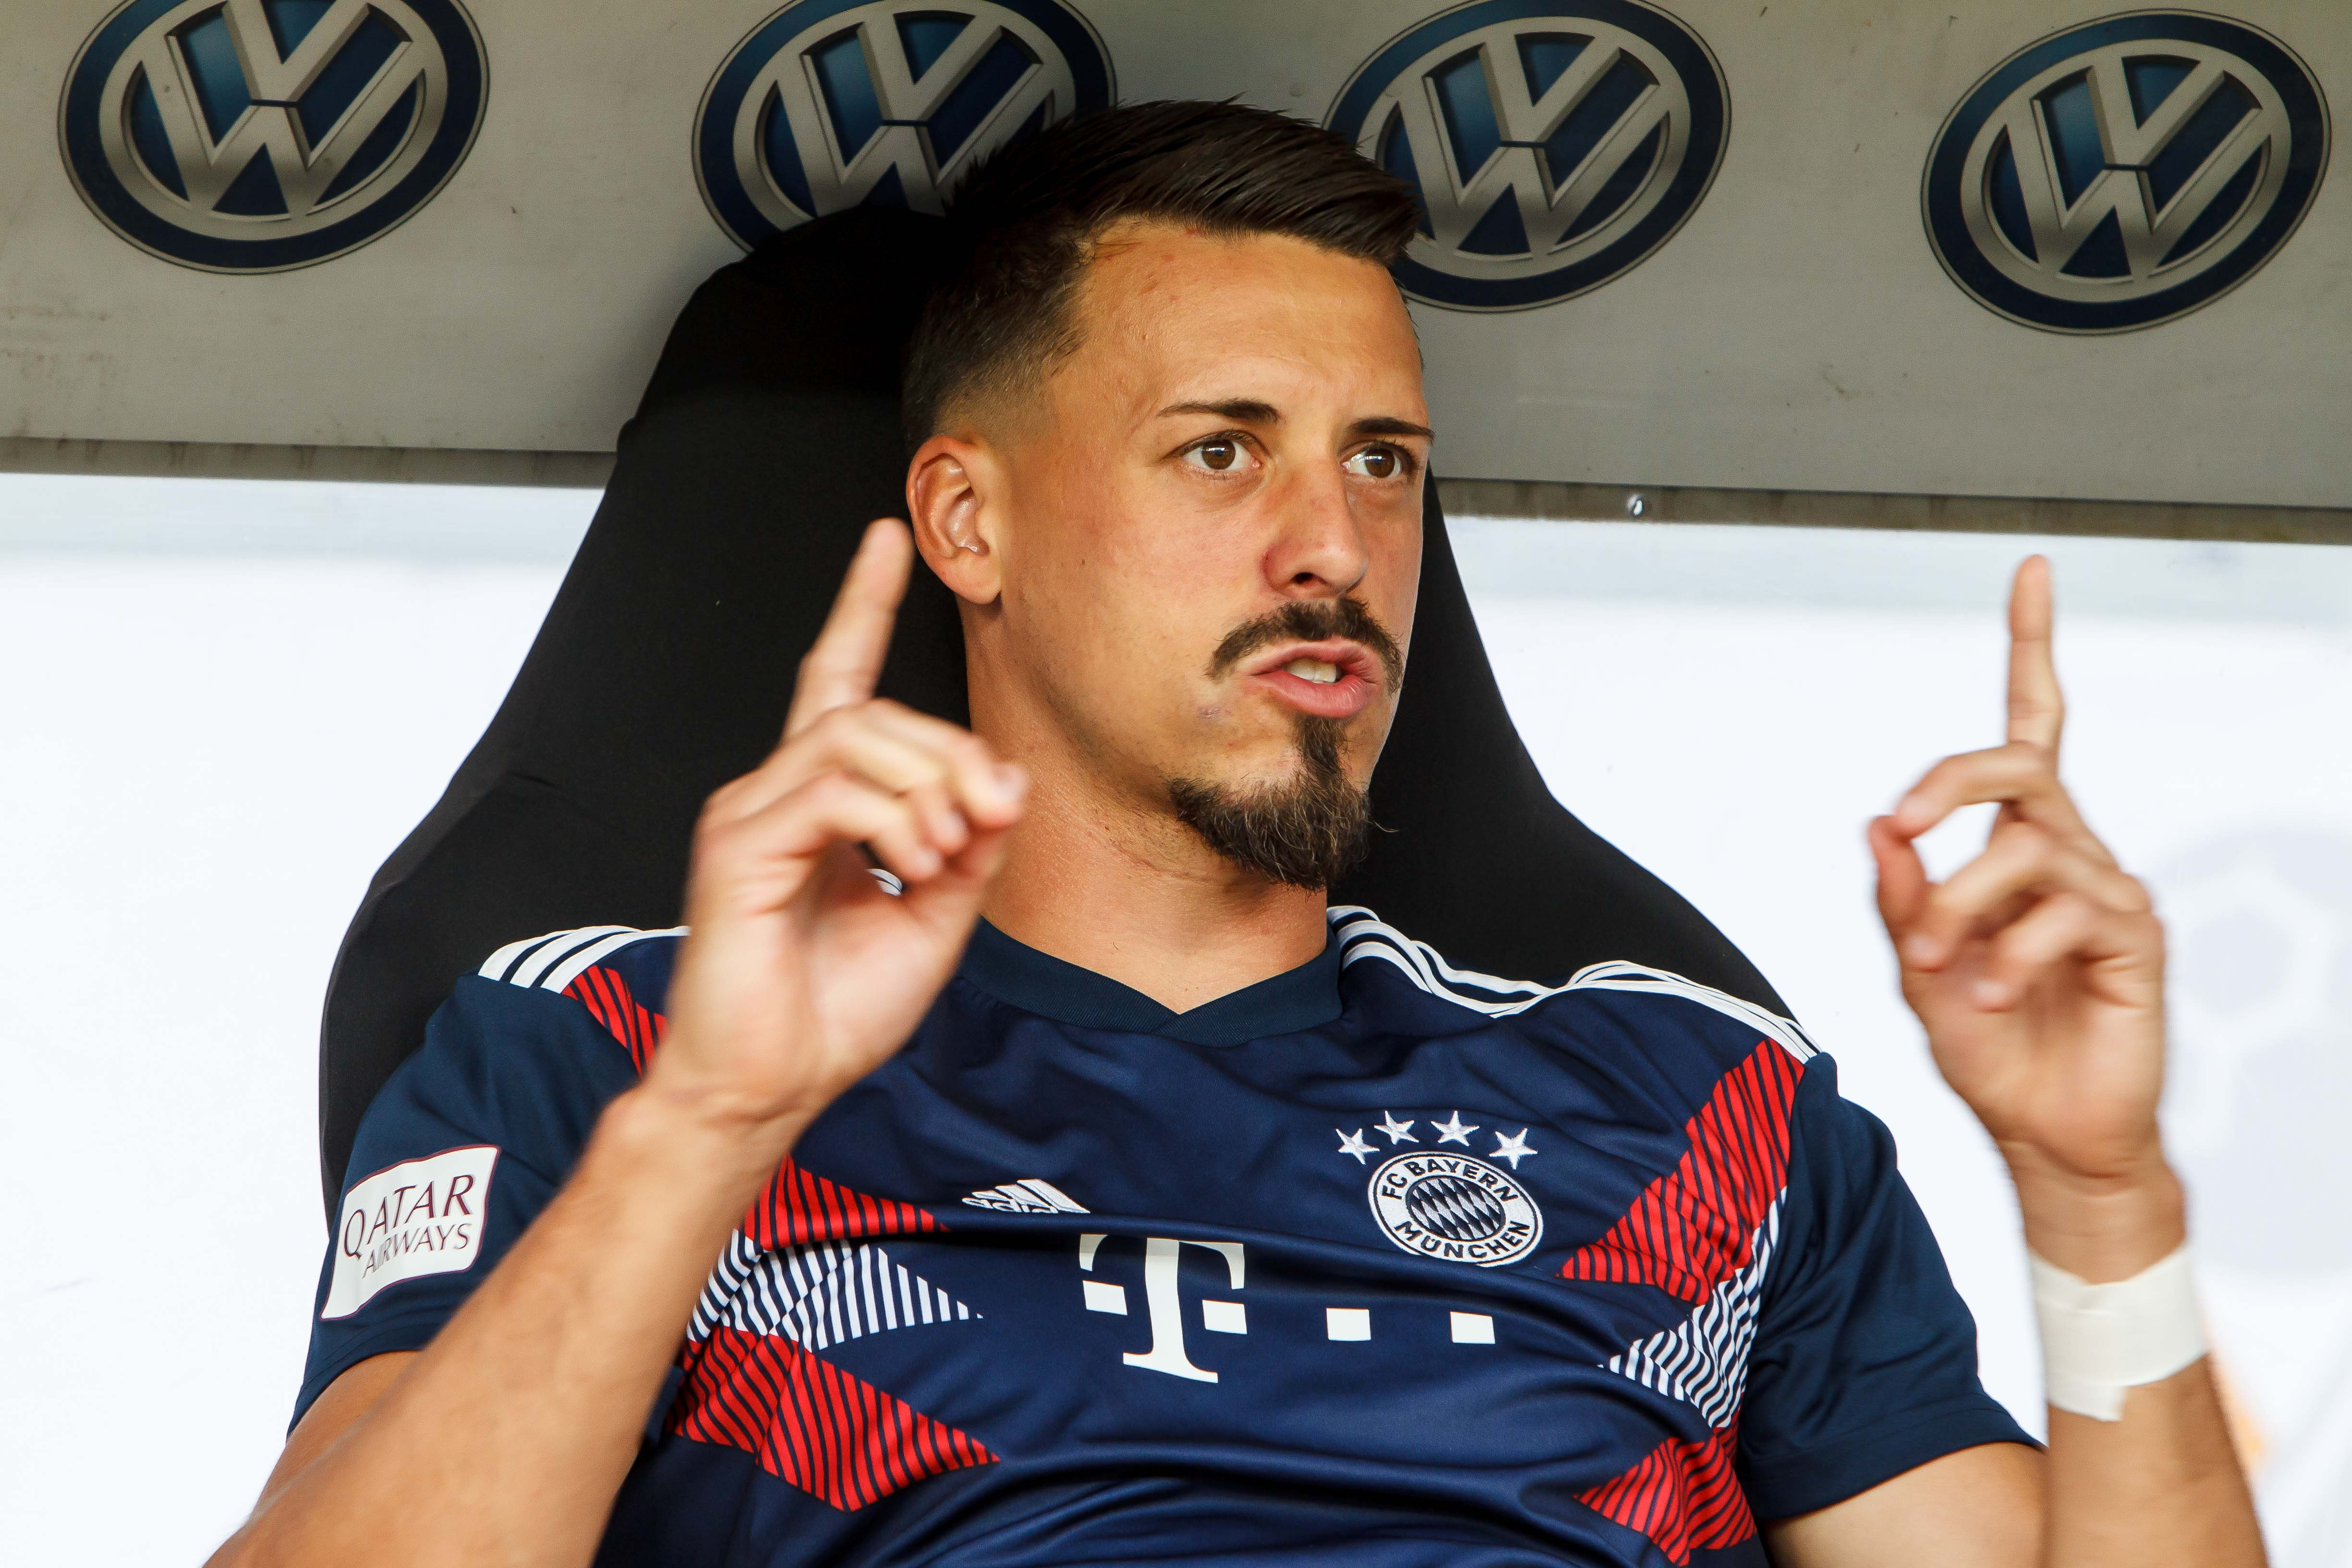 FRANKFURT AM MAIN, GERMANY - AUGUST 12: Sandro Wagner of Bayern Muenchen gestures prior to the DFL Supercup match between Eintracht Frankfurt and Bayern Muenchen at Commerzbank-Arena on August 12, 2018 in Frankfurt am Main, Germany.